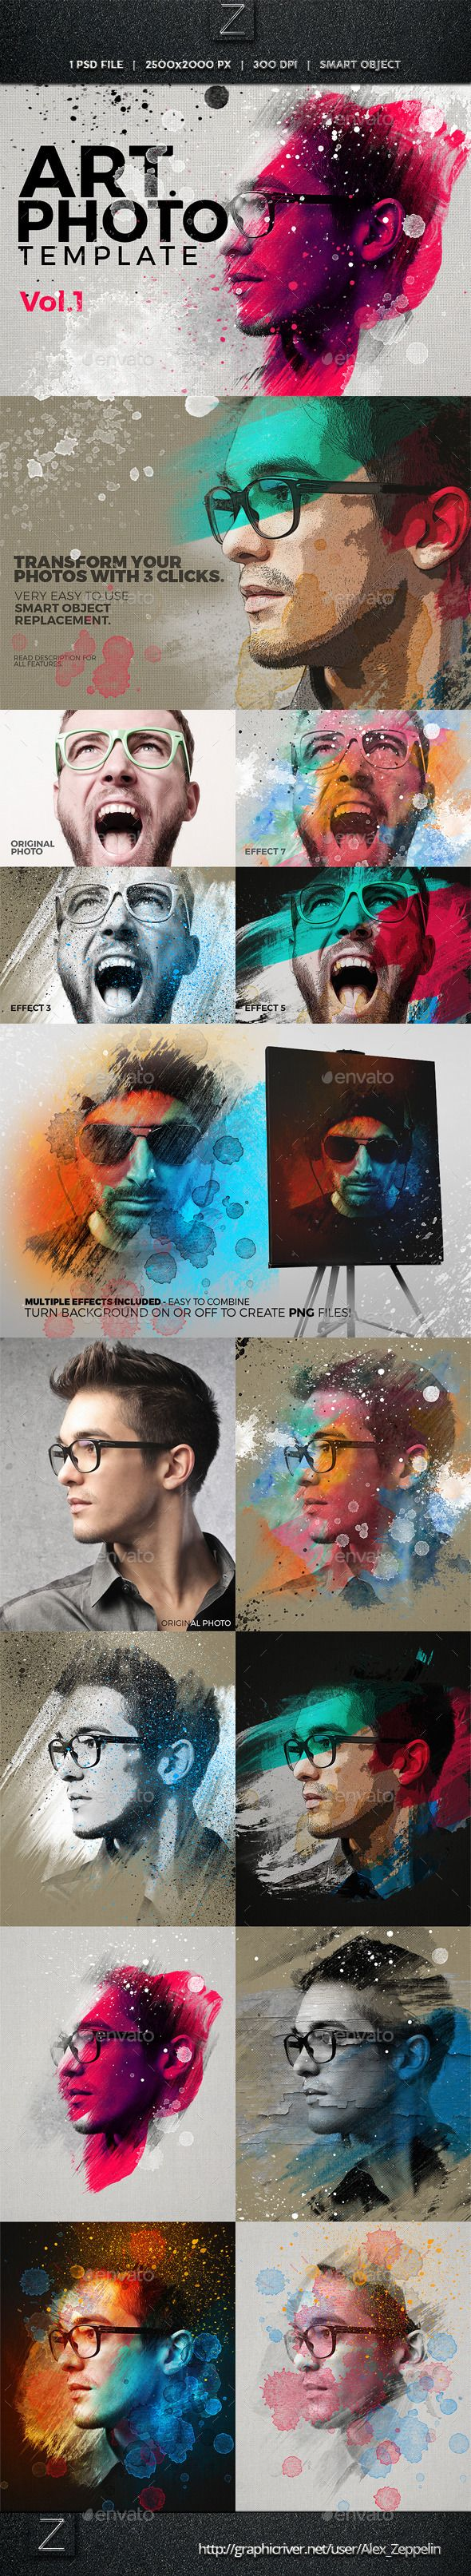 Art Photo Template - Artistic Photo Templates